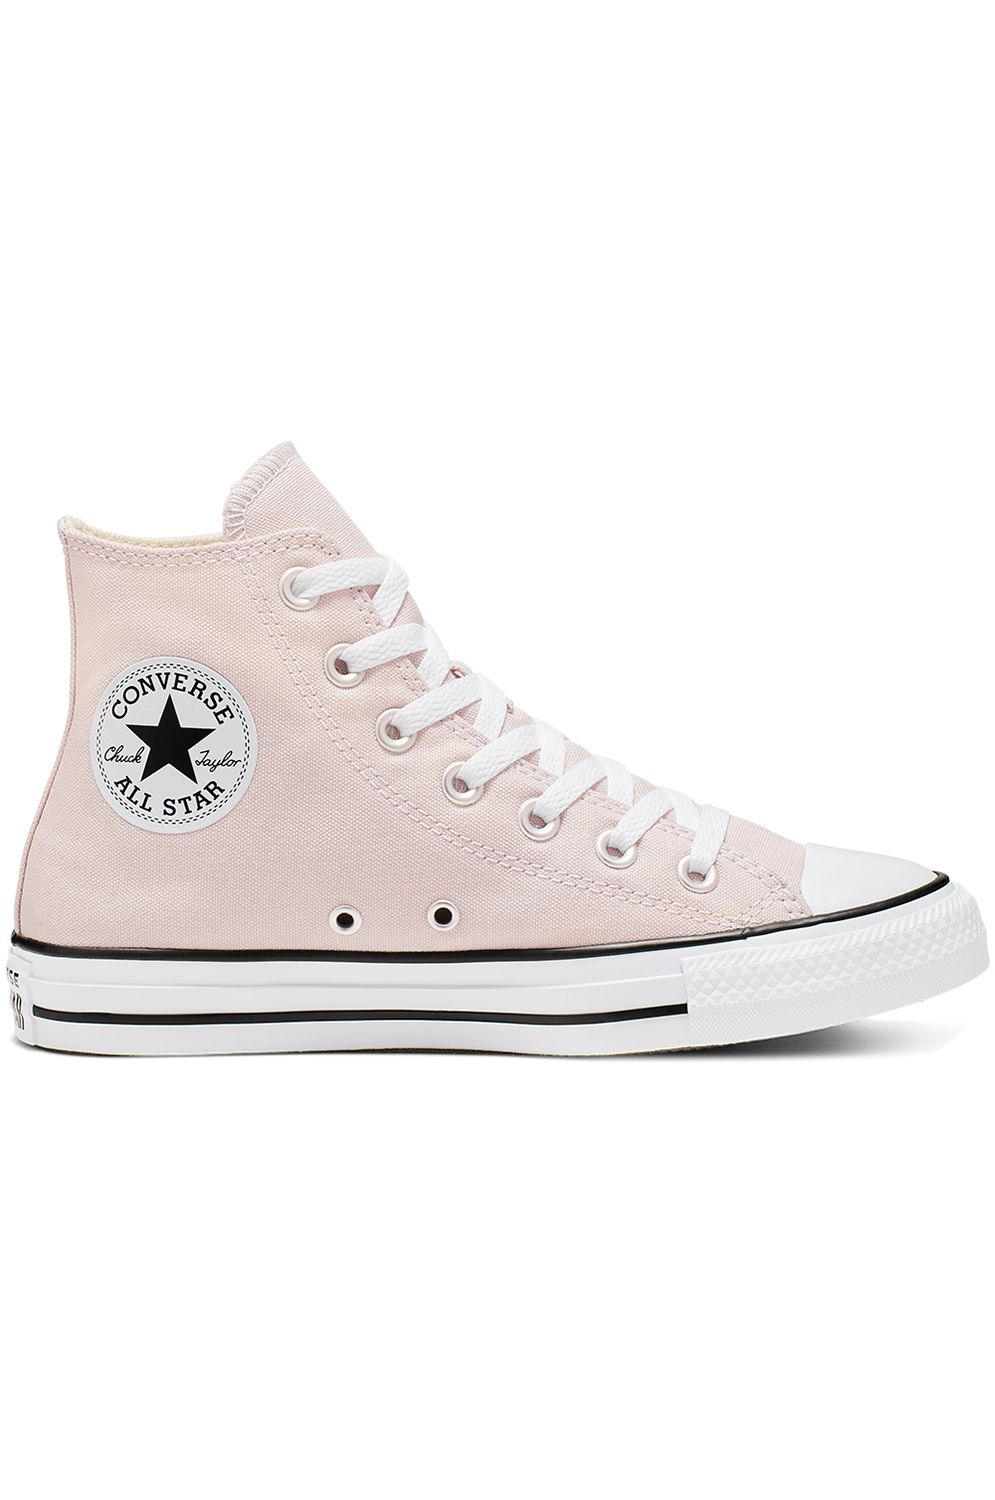 Converse Star Player Chuck Taylor All Star Sneaker NWT